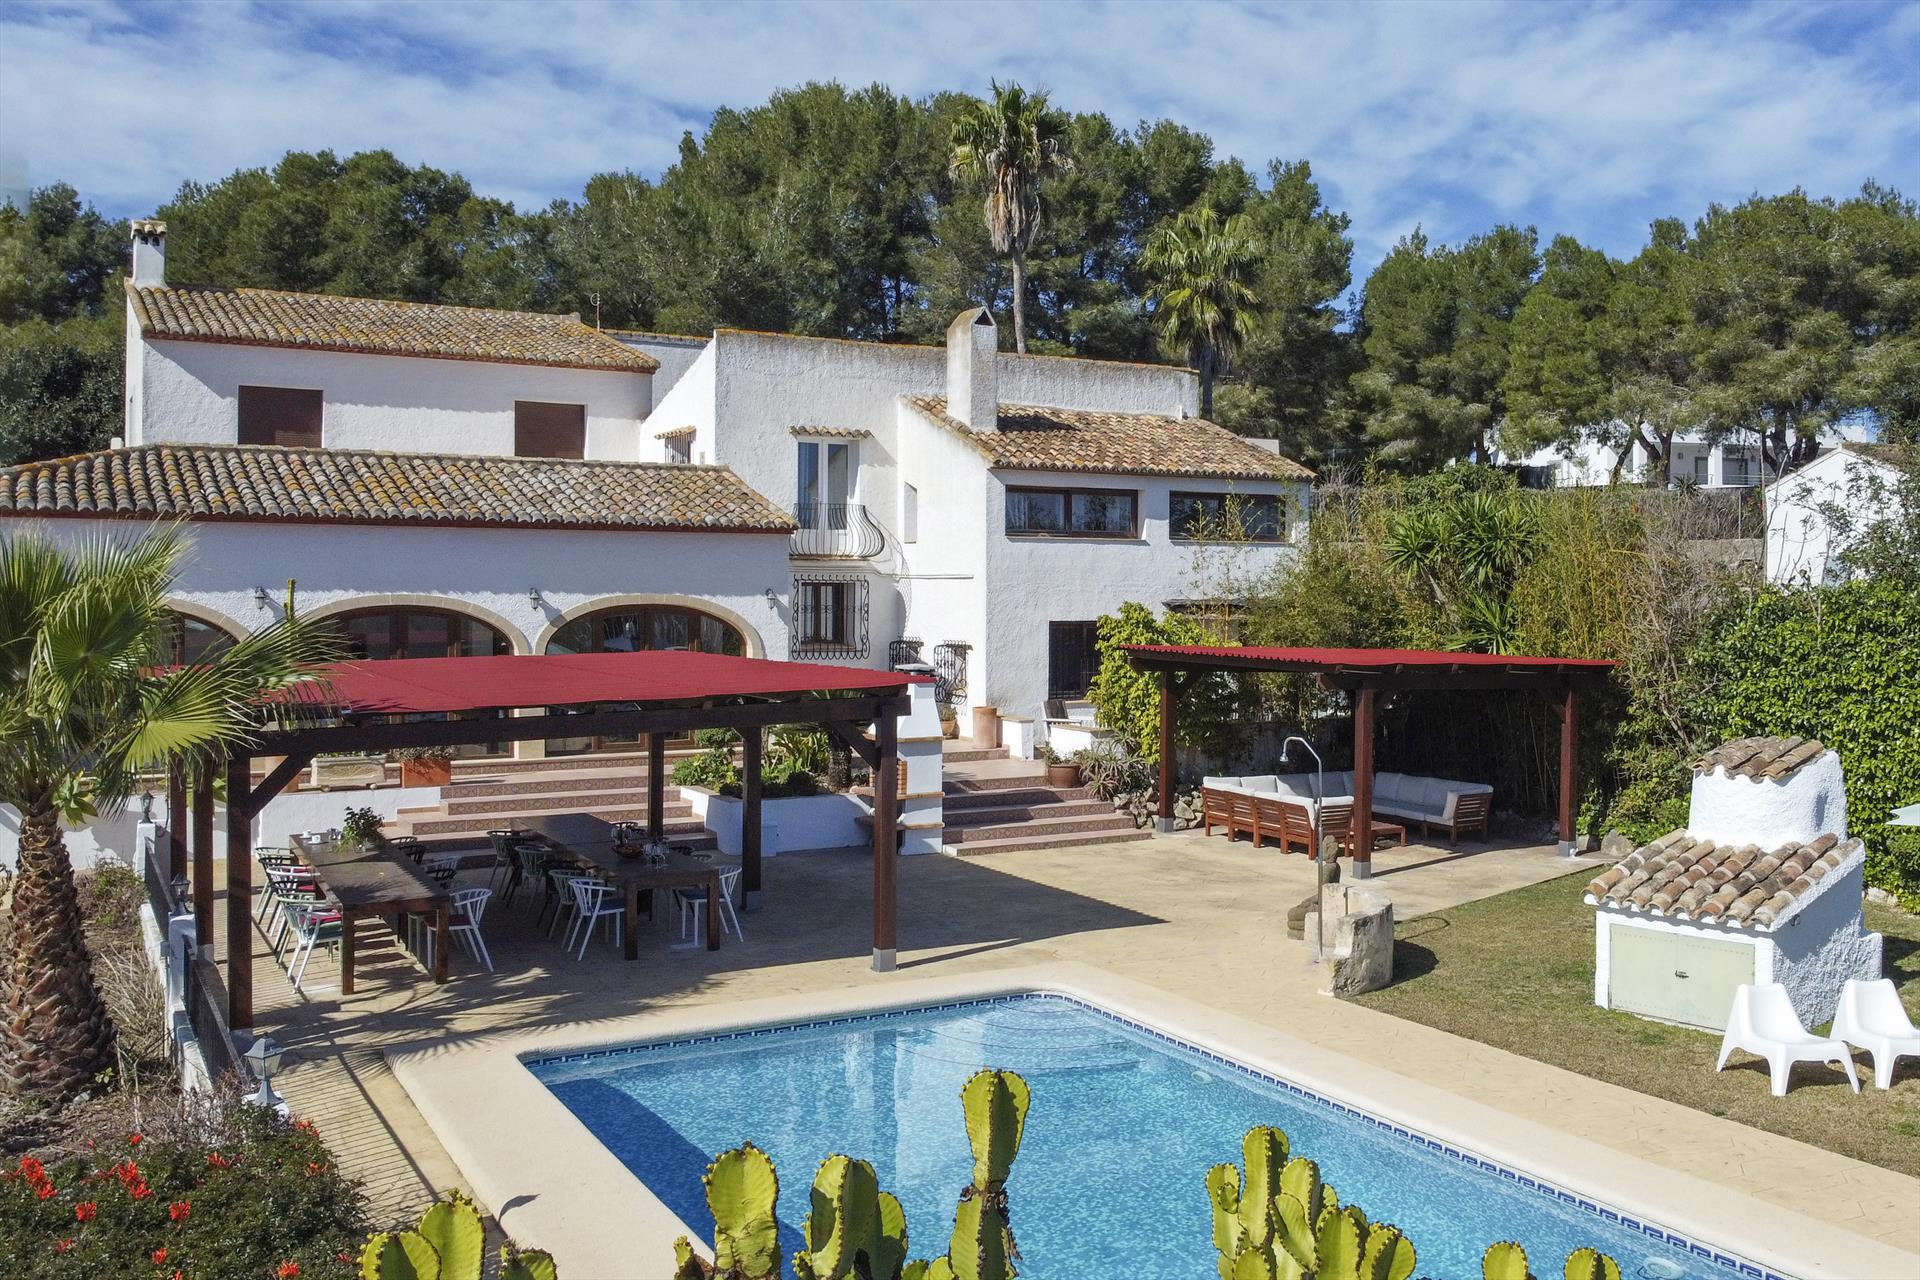 Casa Rosalia 12 pax, Large and classic villa  with private pool in Javea, on the Costa Blanca, Spain for 12 persons.....